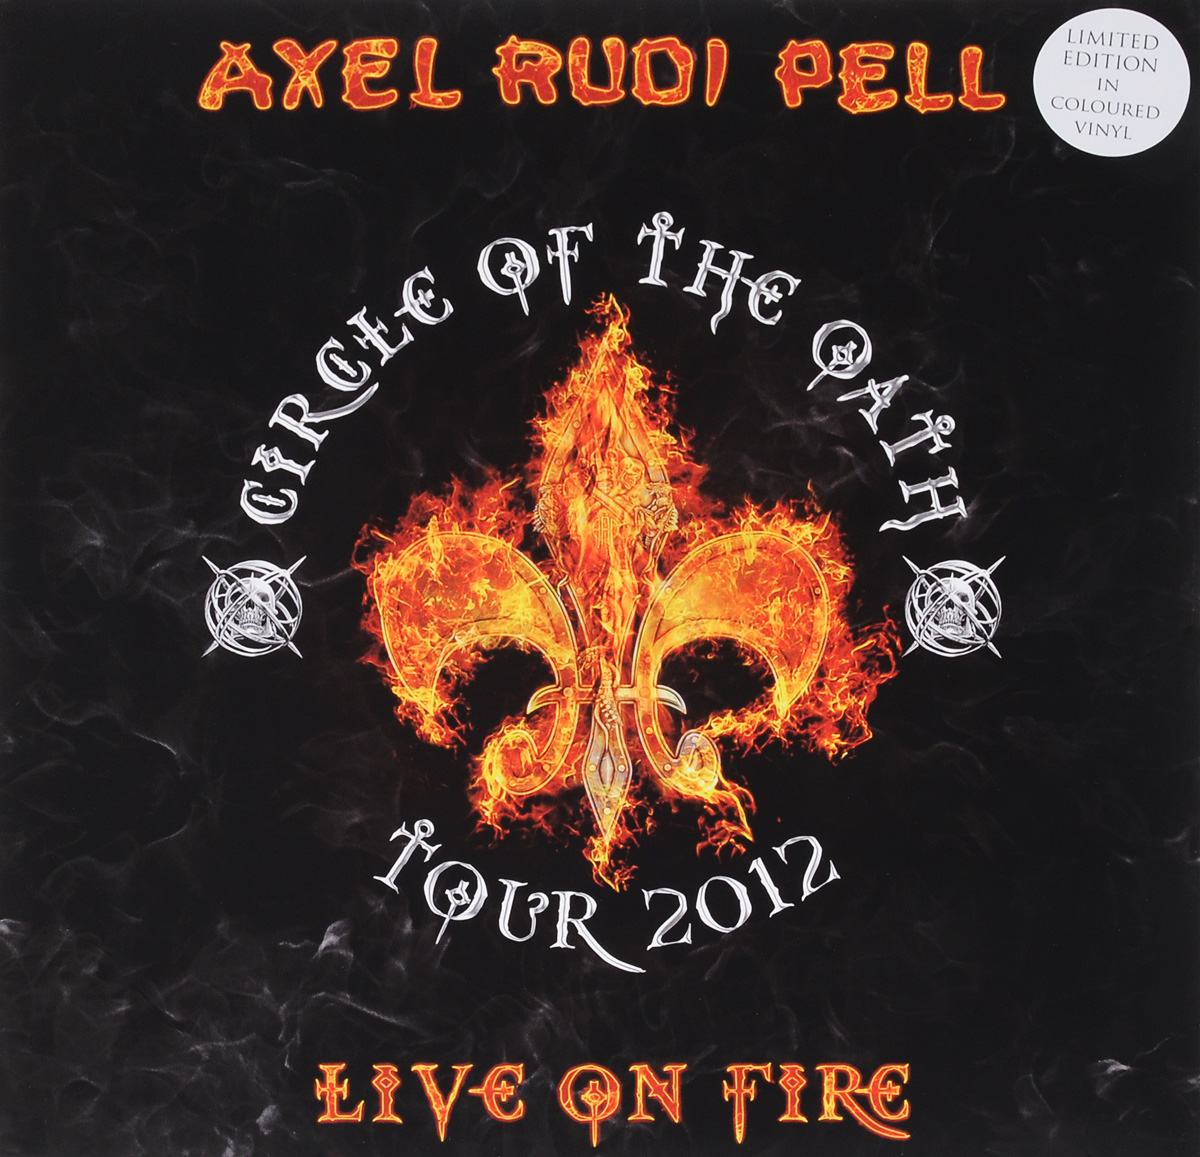 Аксель Руди Пелл Axel Rudi Pell. Live On Fire. Limited Edition In Colored Vinyl (3 LP) bigbang 2012 bigbang live concert alive tour in seoul release date 2013 01 10 kpop